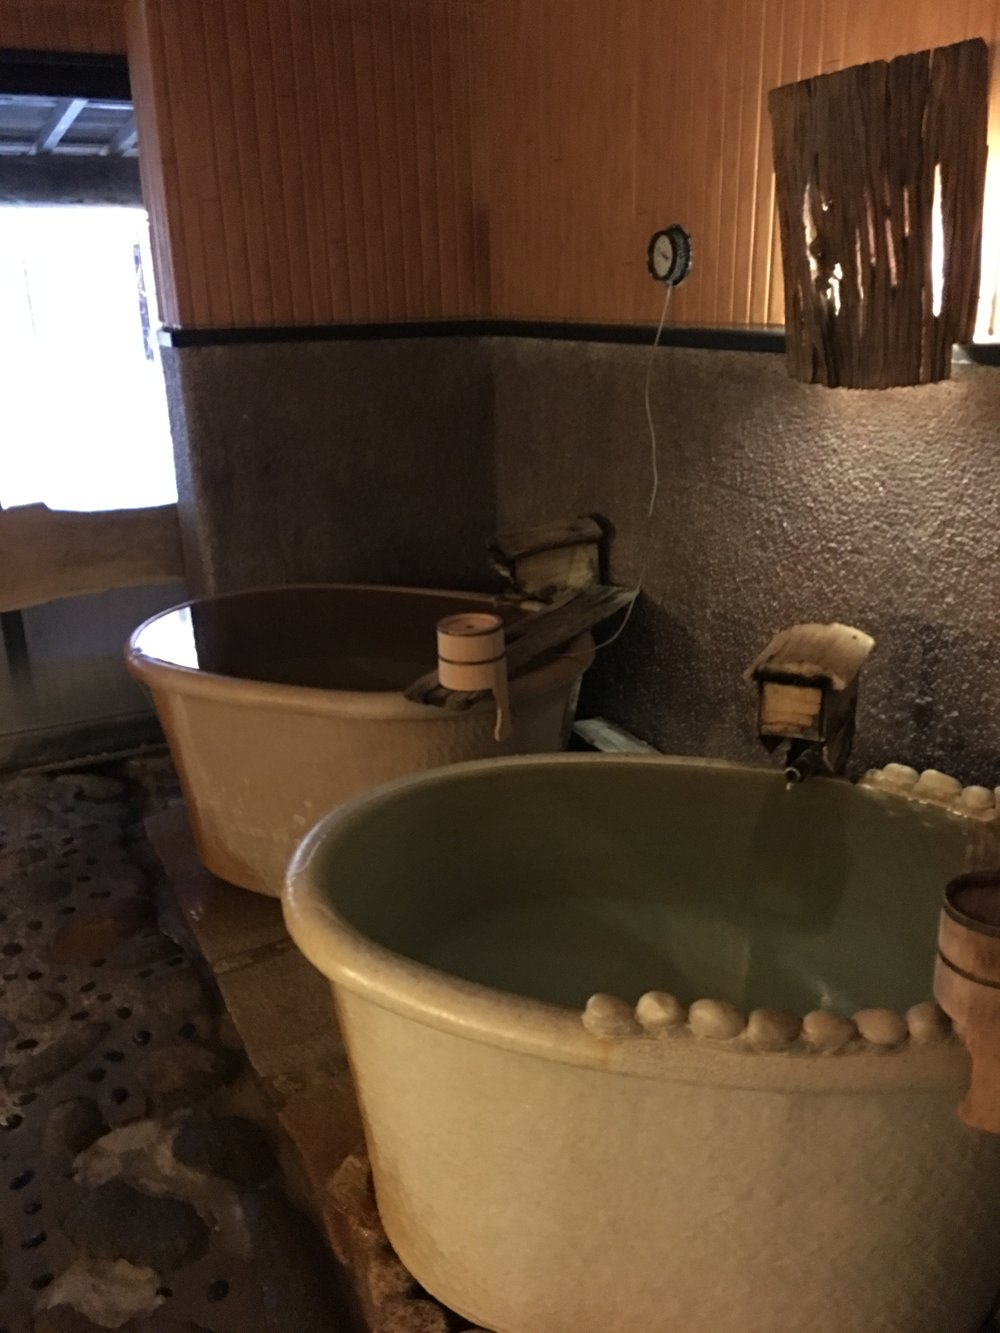 This hot bath is a carbonated hot spring having two of its kind here (one for men and one for women in separate locations).